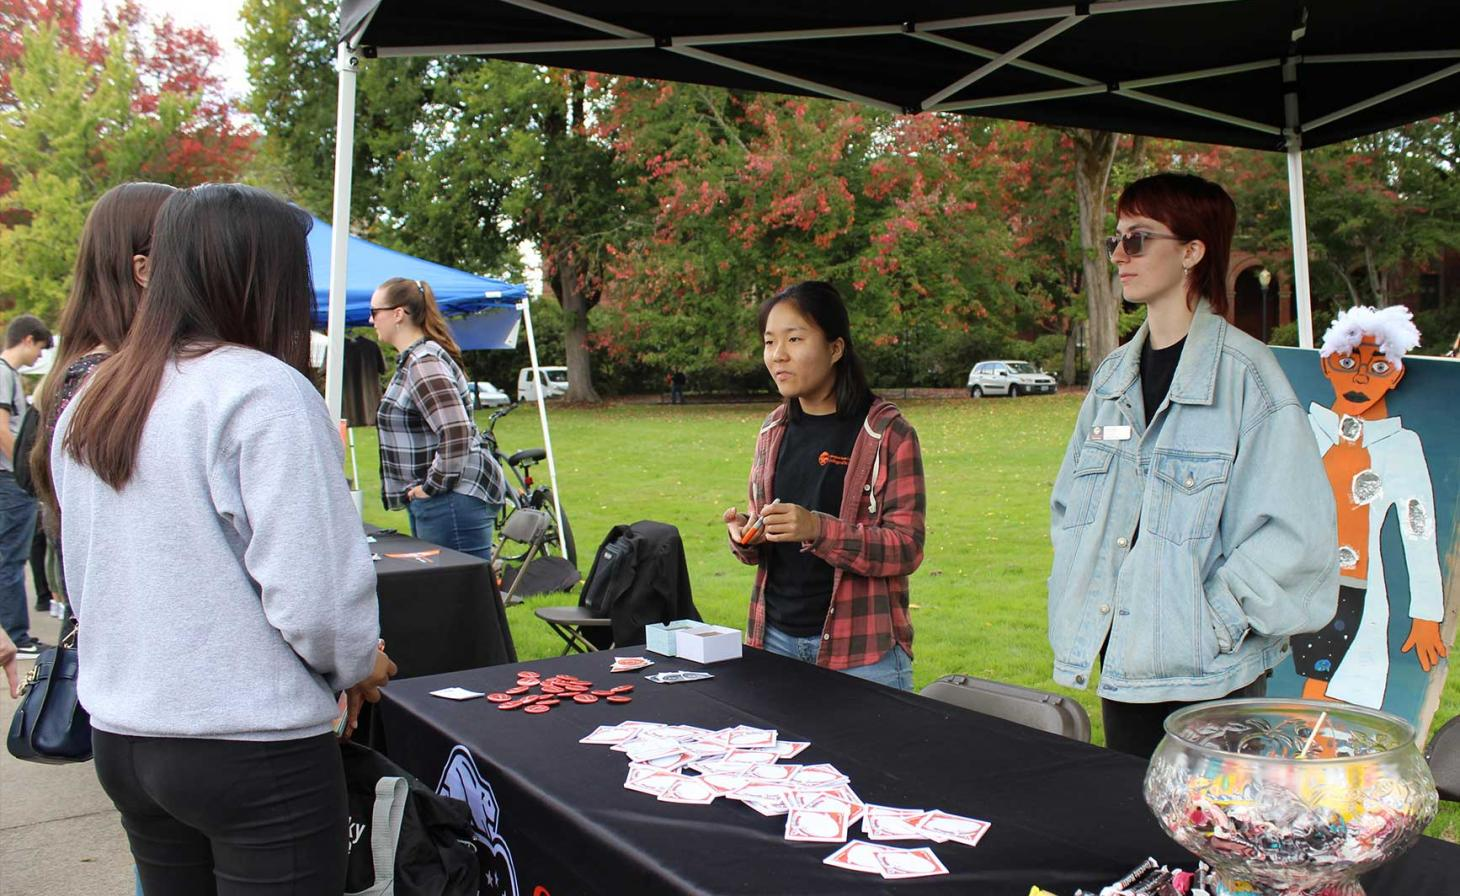 Peer advisors talking with students at College of Science booth in Memorial Union quad.